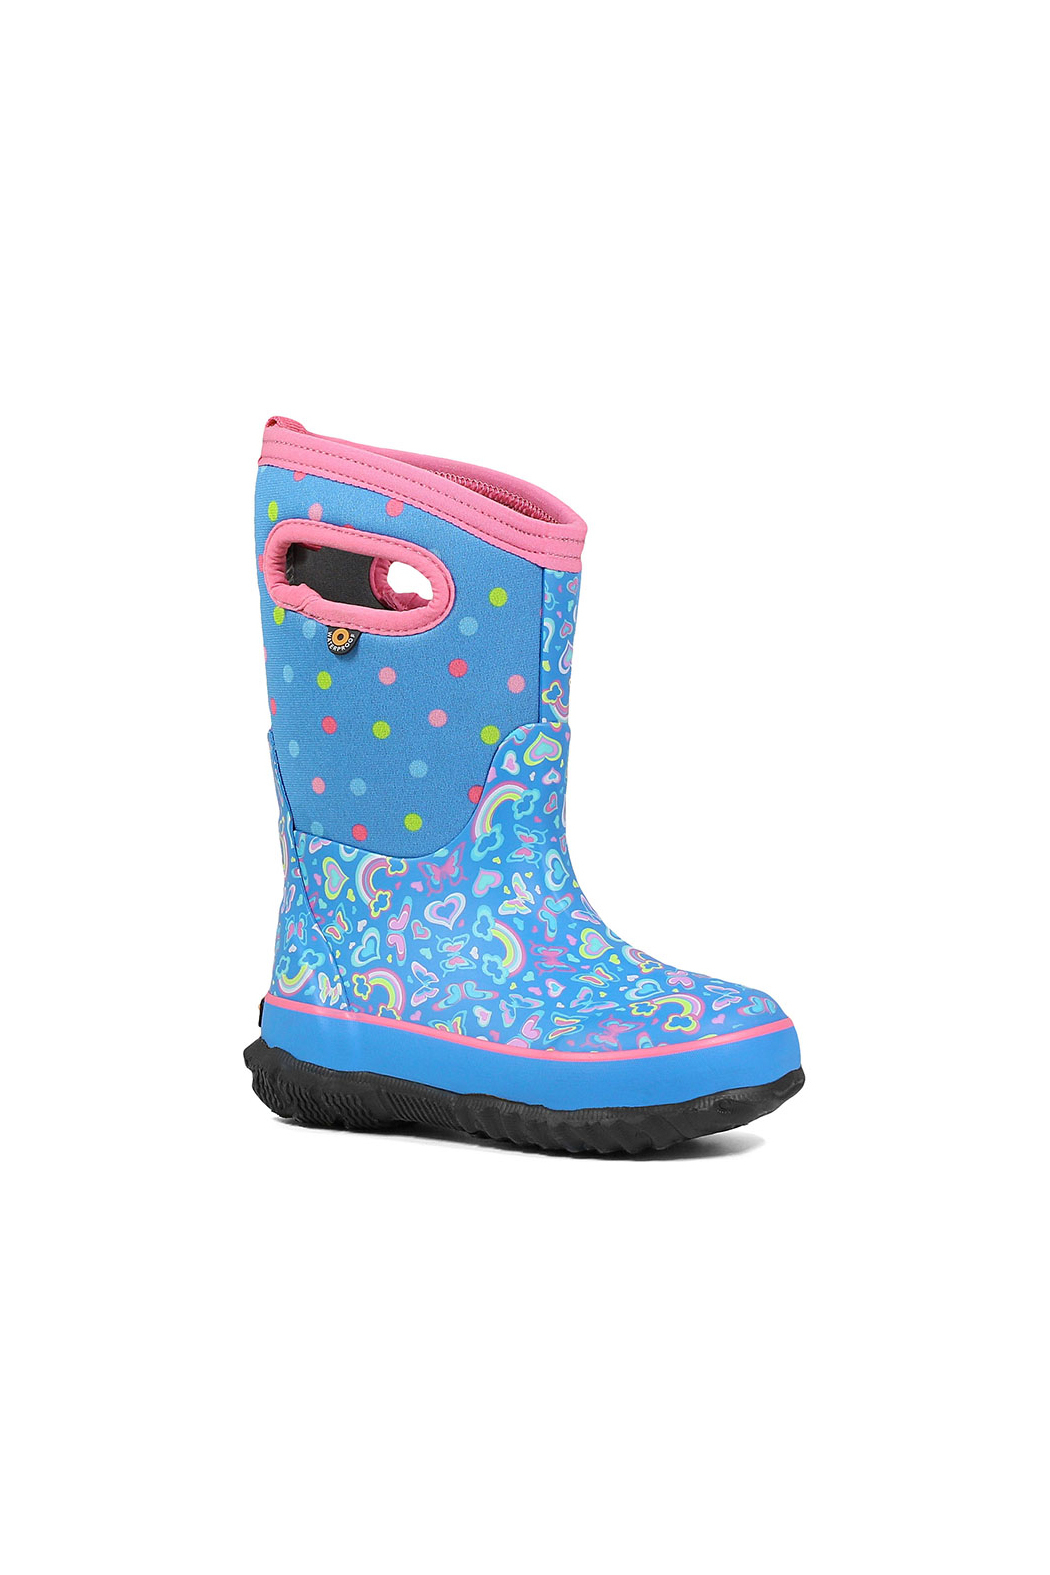 bogs  Classic Rainbow Kids Insulated Boots - Front Full Image